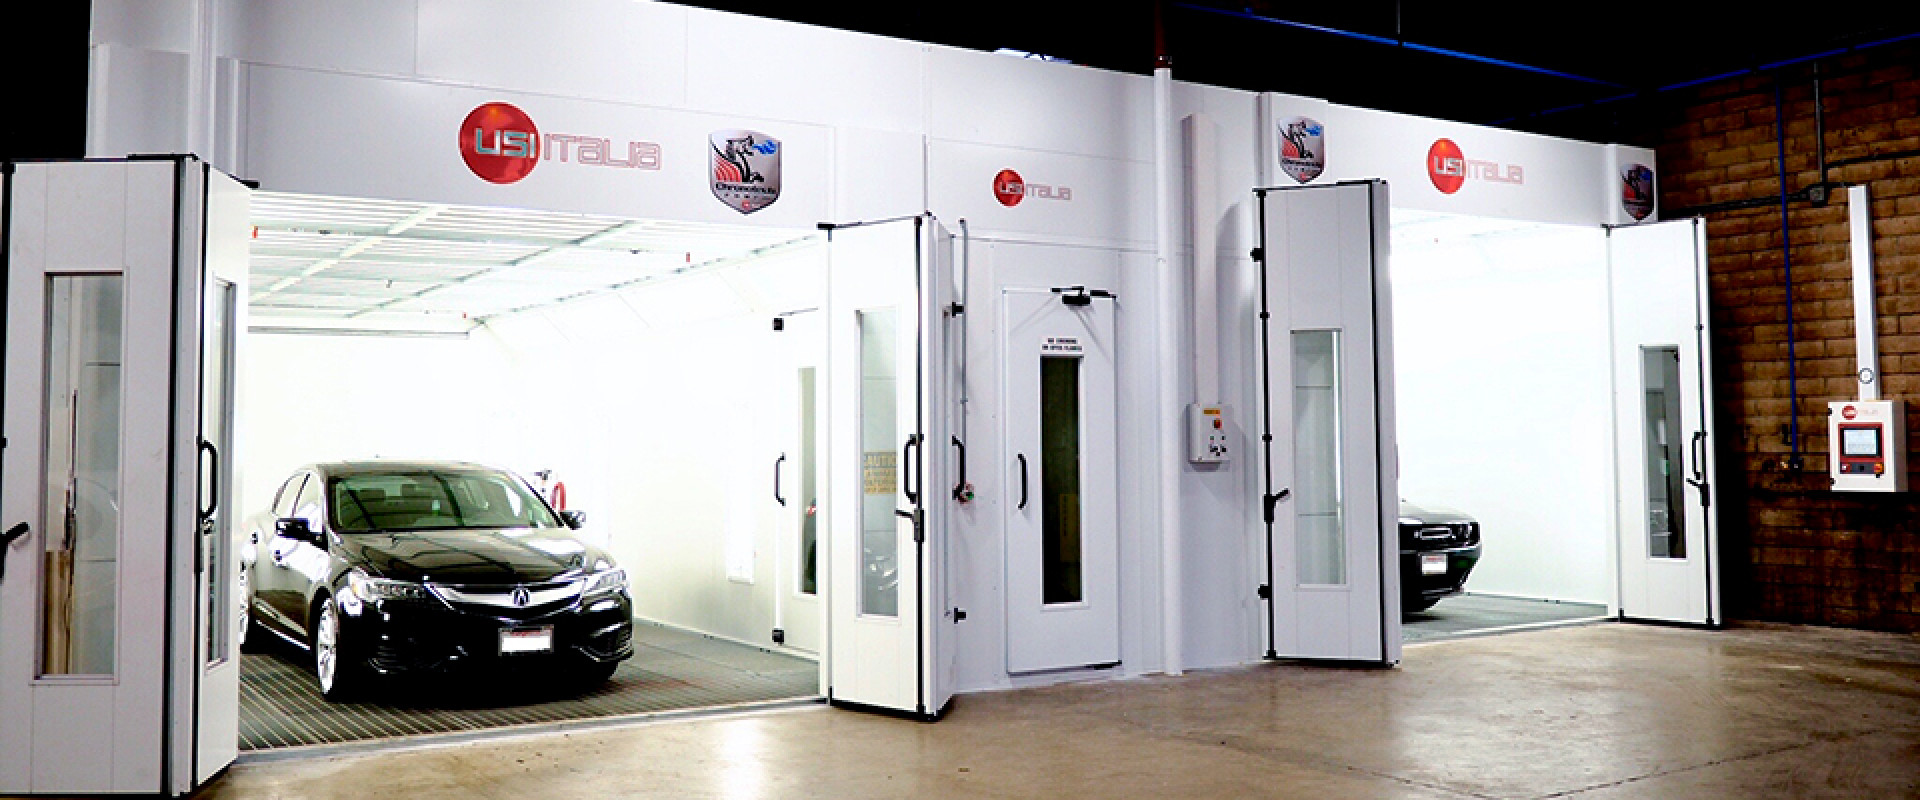 Xcel Collision Center - Spray Booths